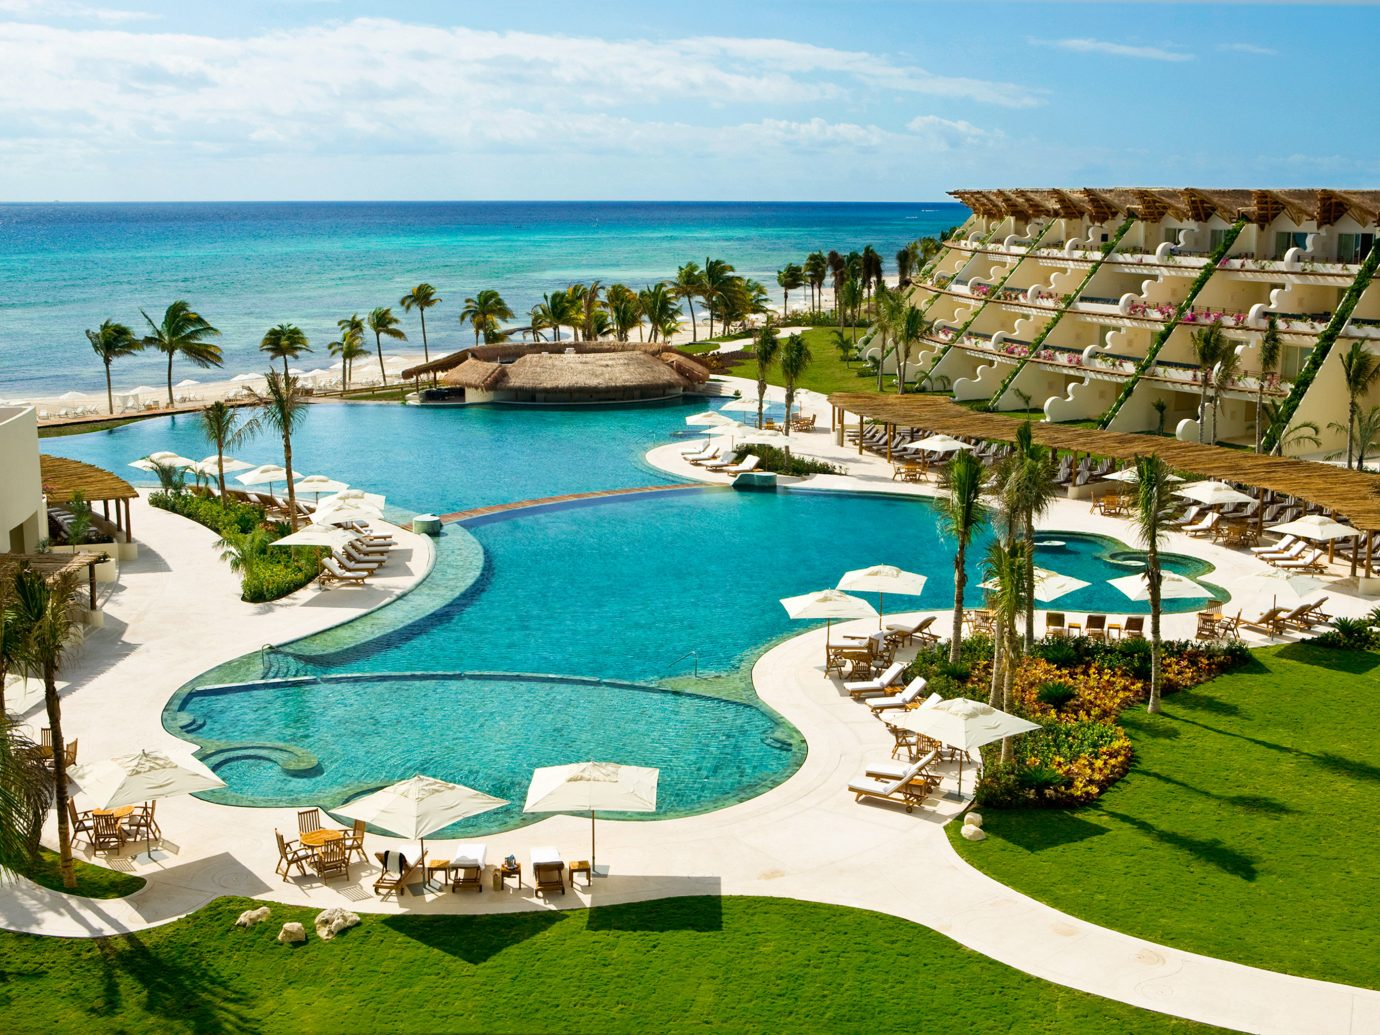 10 Best AllInclusive Resorts in Riviera Maya  Jetsetter